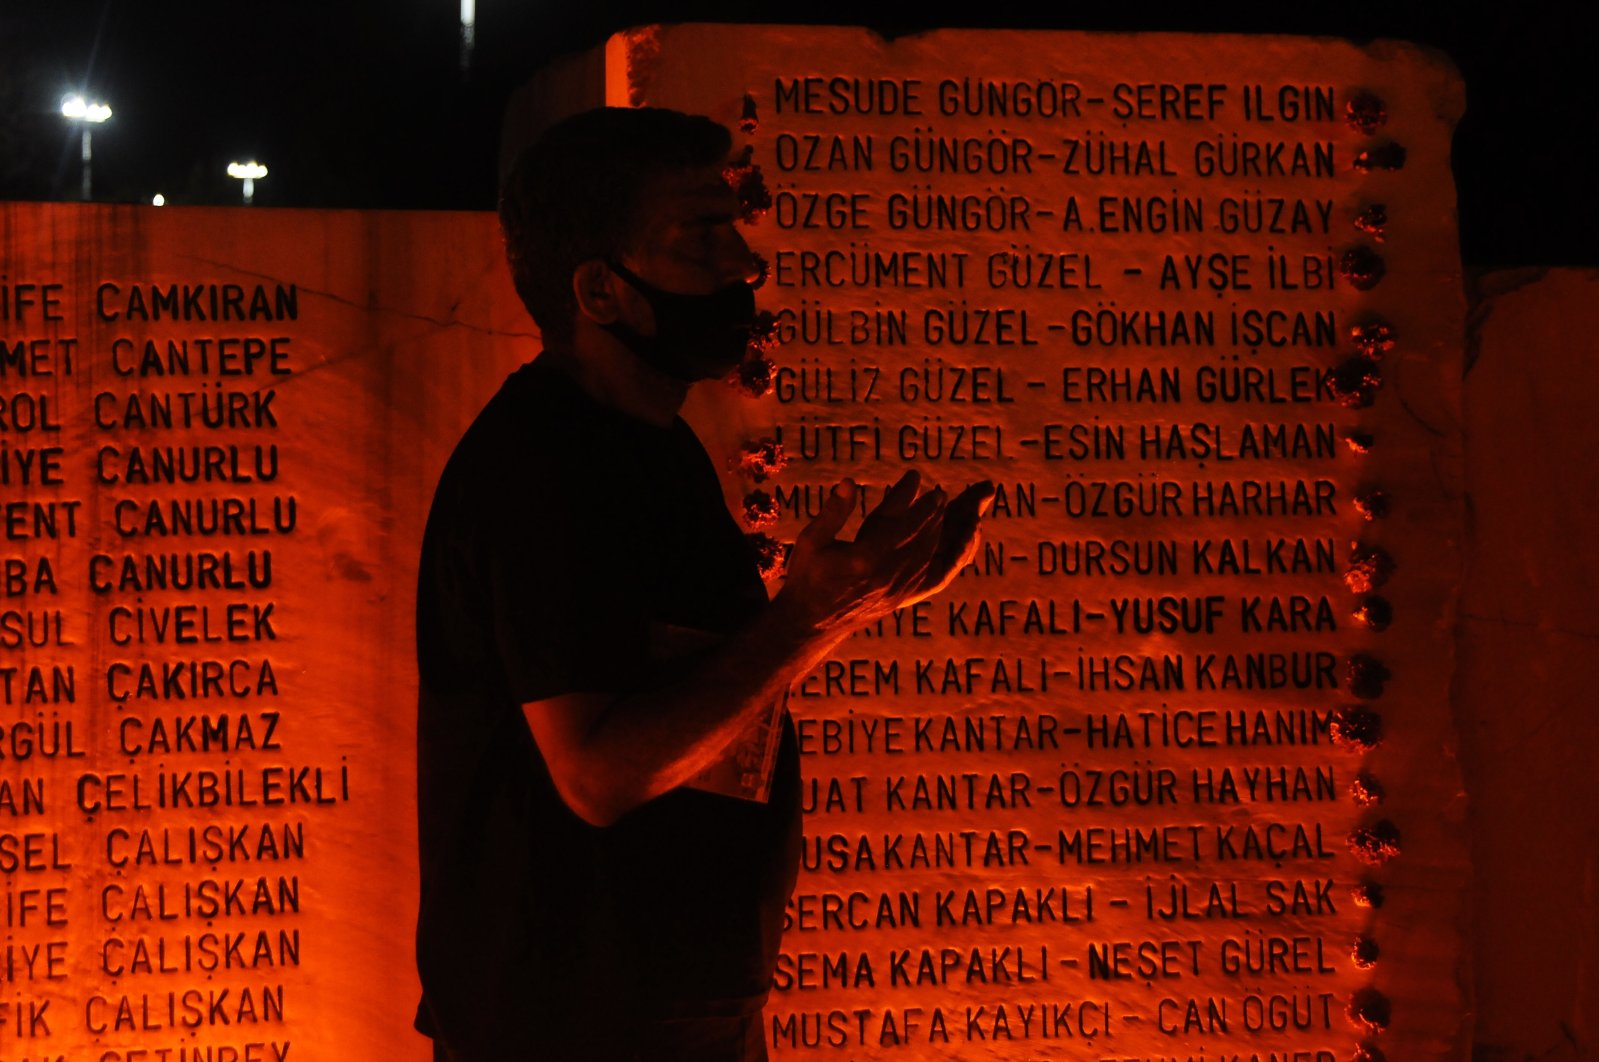 A man prays by a monument bearing names of earthquake victims, in Yalova, northwestern Turkey, Aug. 17, 2020. (AA Photo)